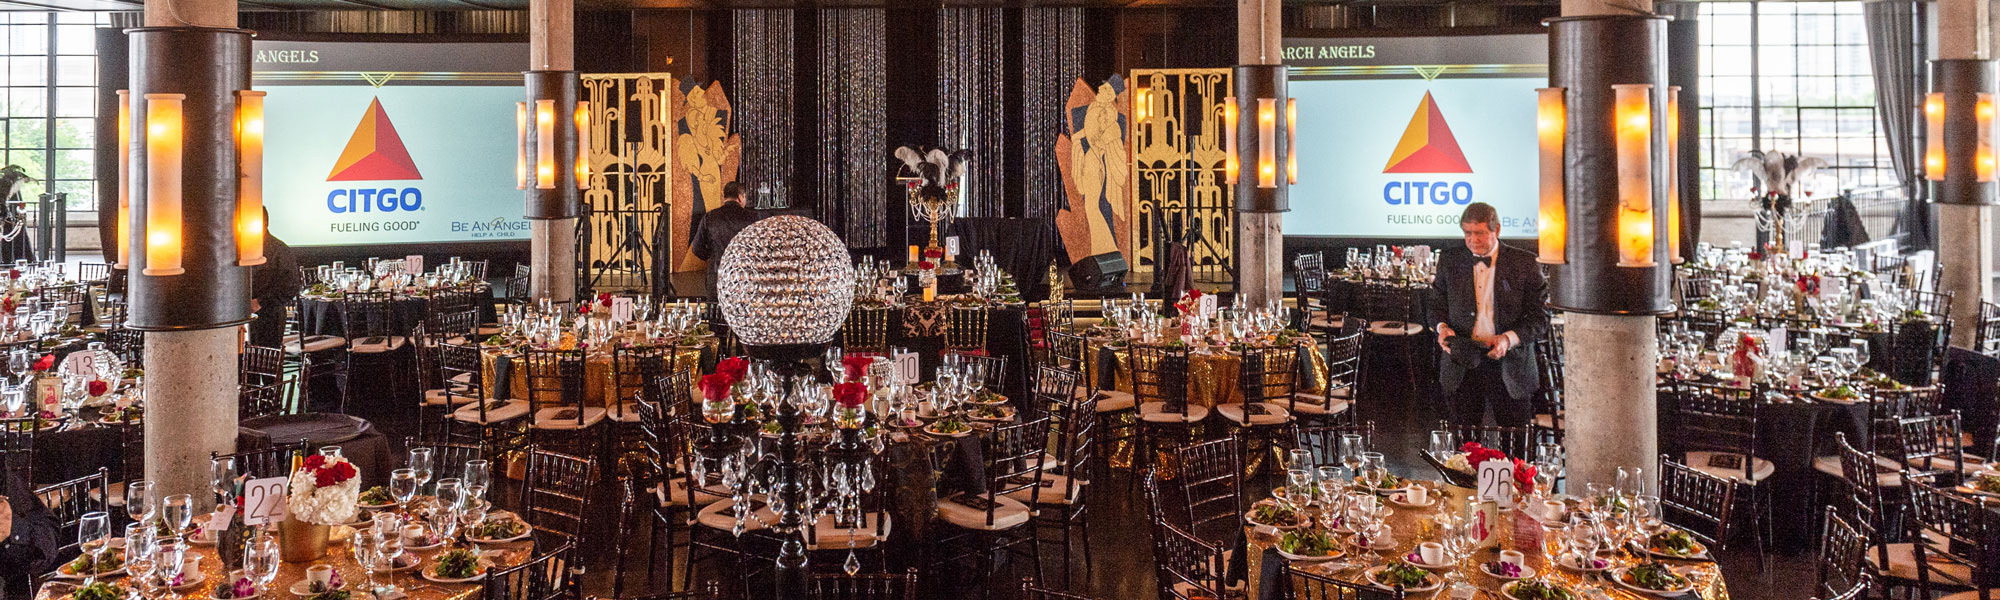 Be An Angel Gala 2019 Event Banner Photo